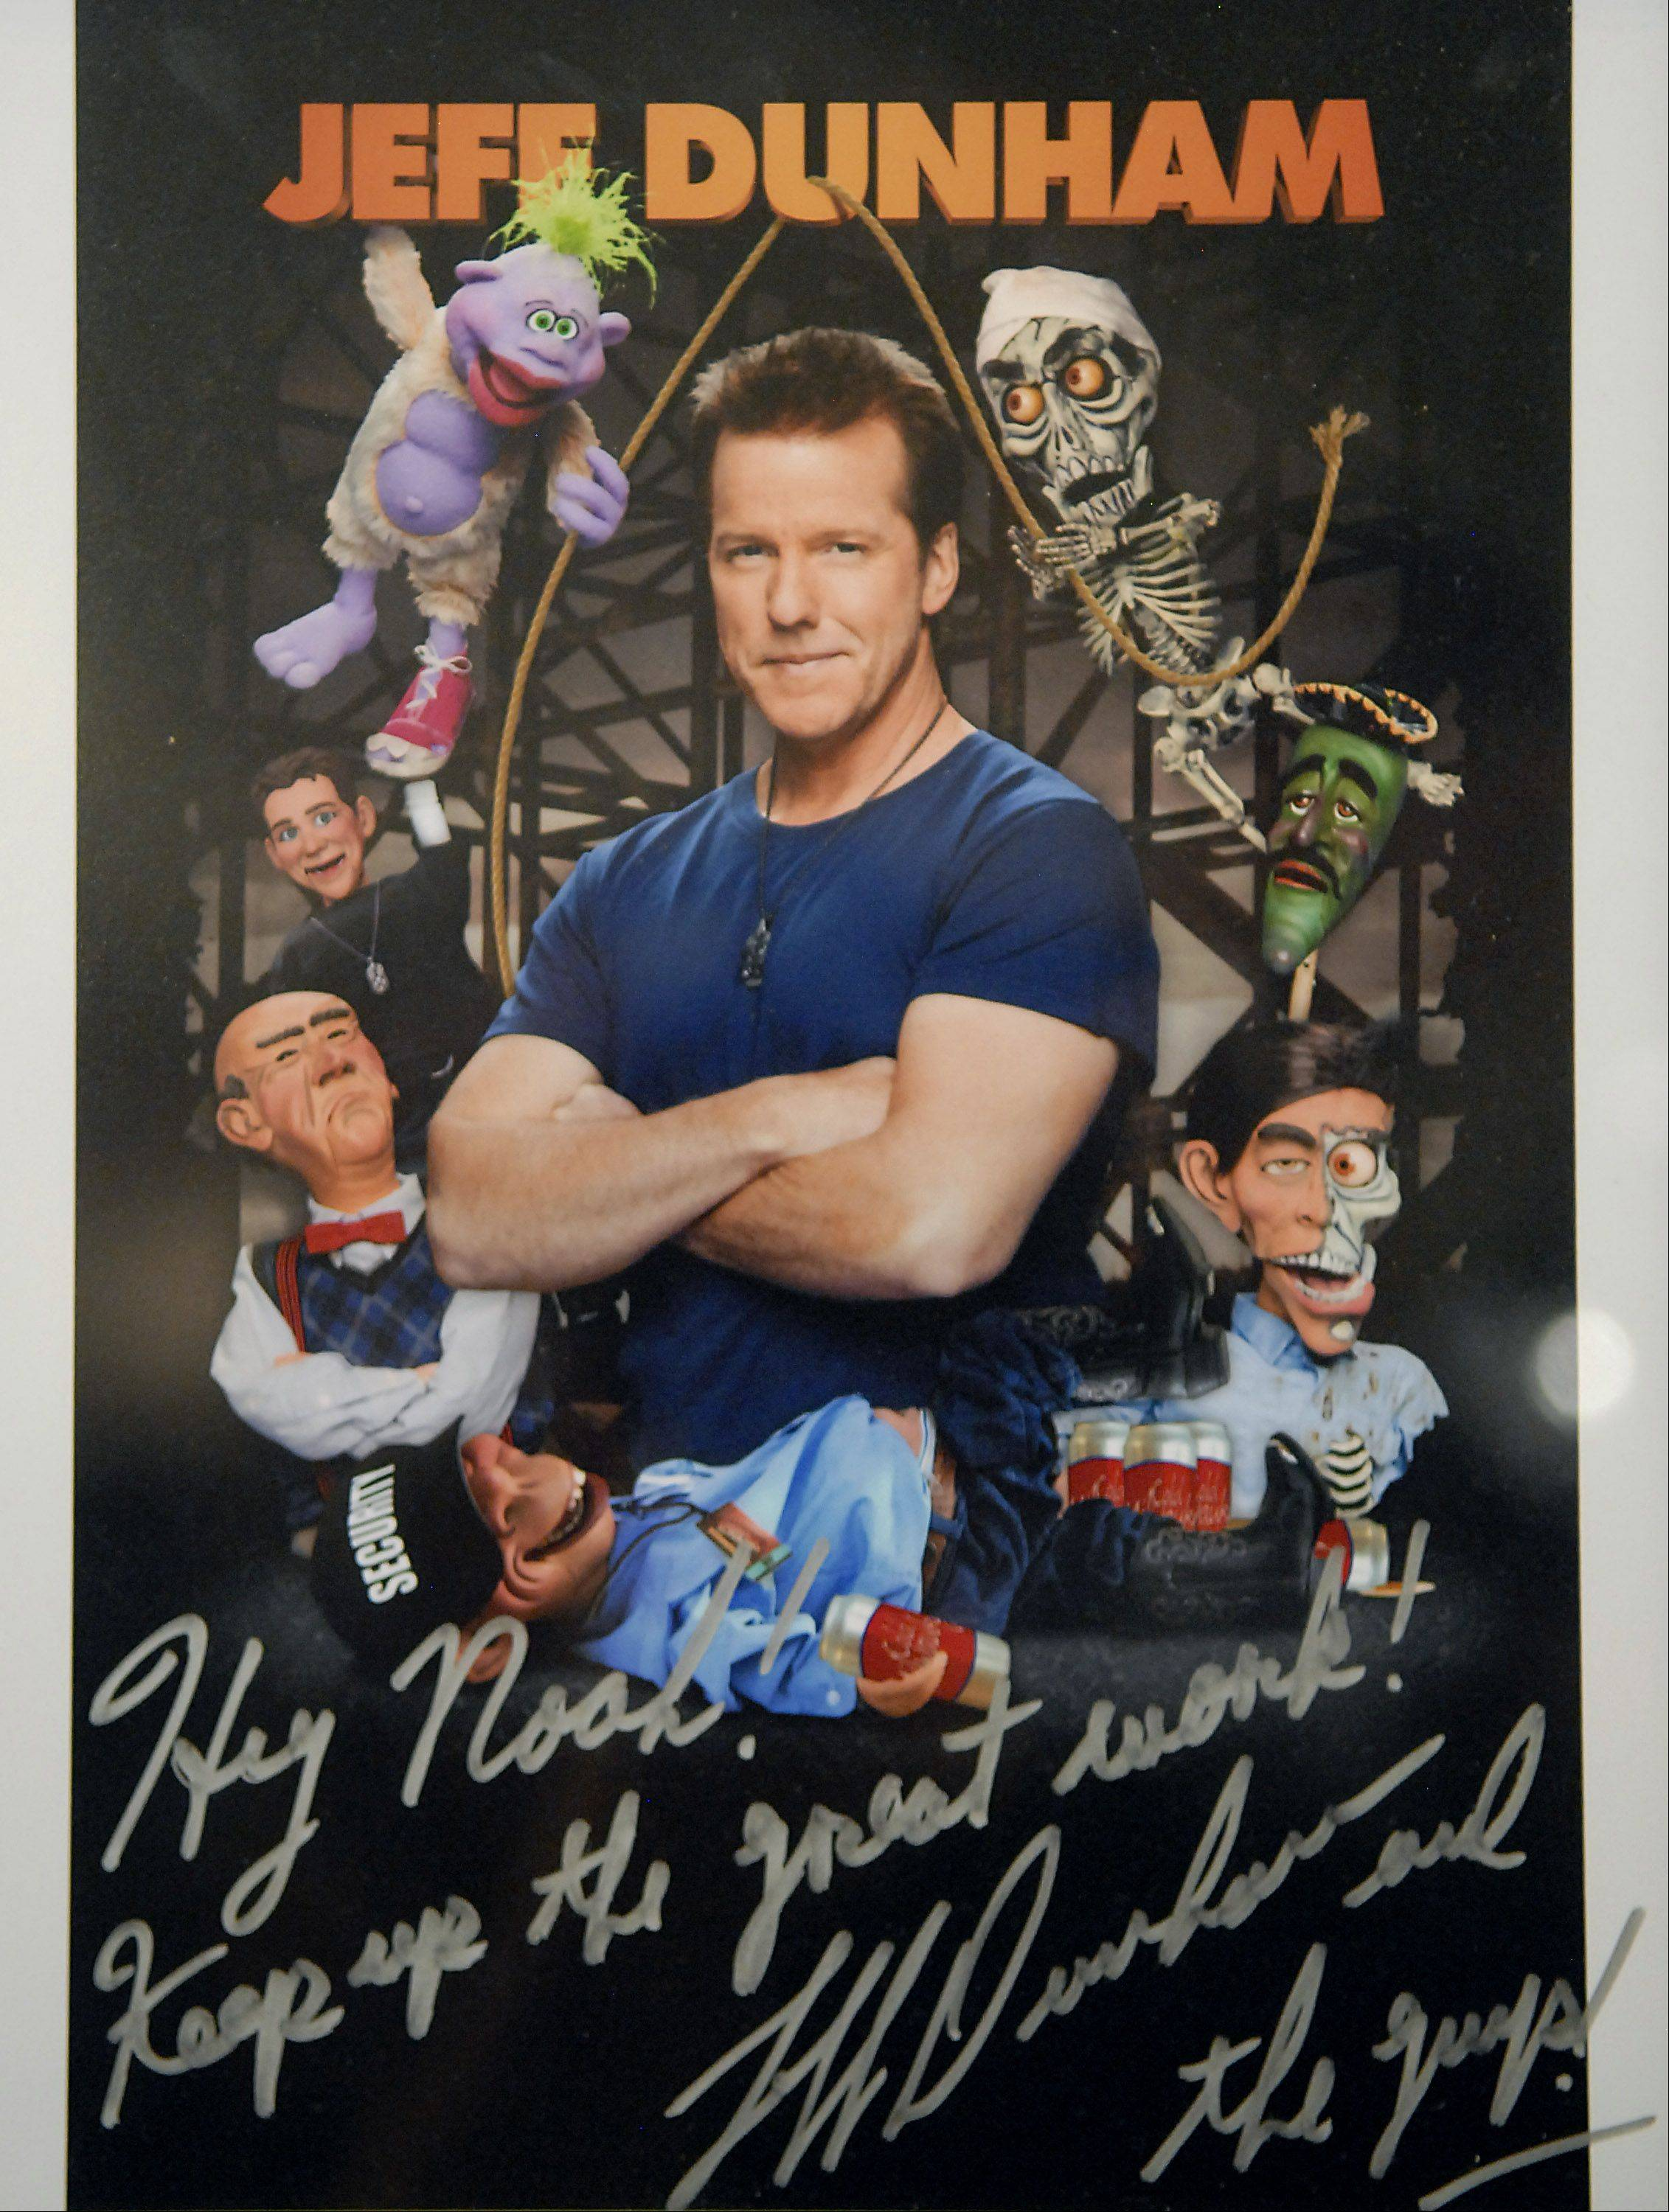 Twelve-year-old ventriloquist Noah Simmons of Huntley received this autographed photo from professional ventriloquist Jeff Dunham after getting a surprise visit from him July 18.